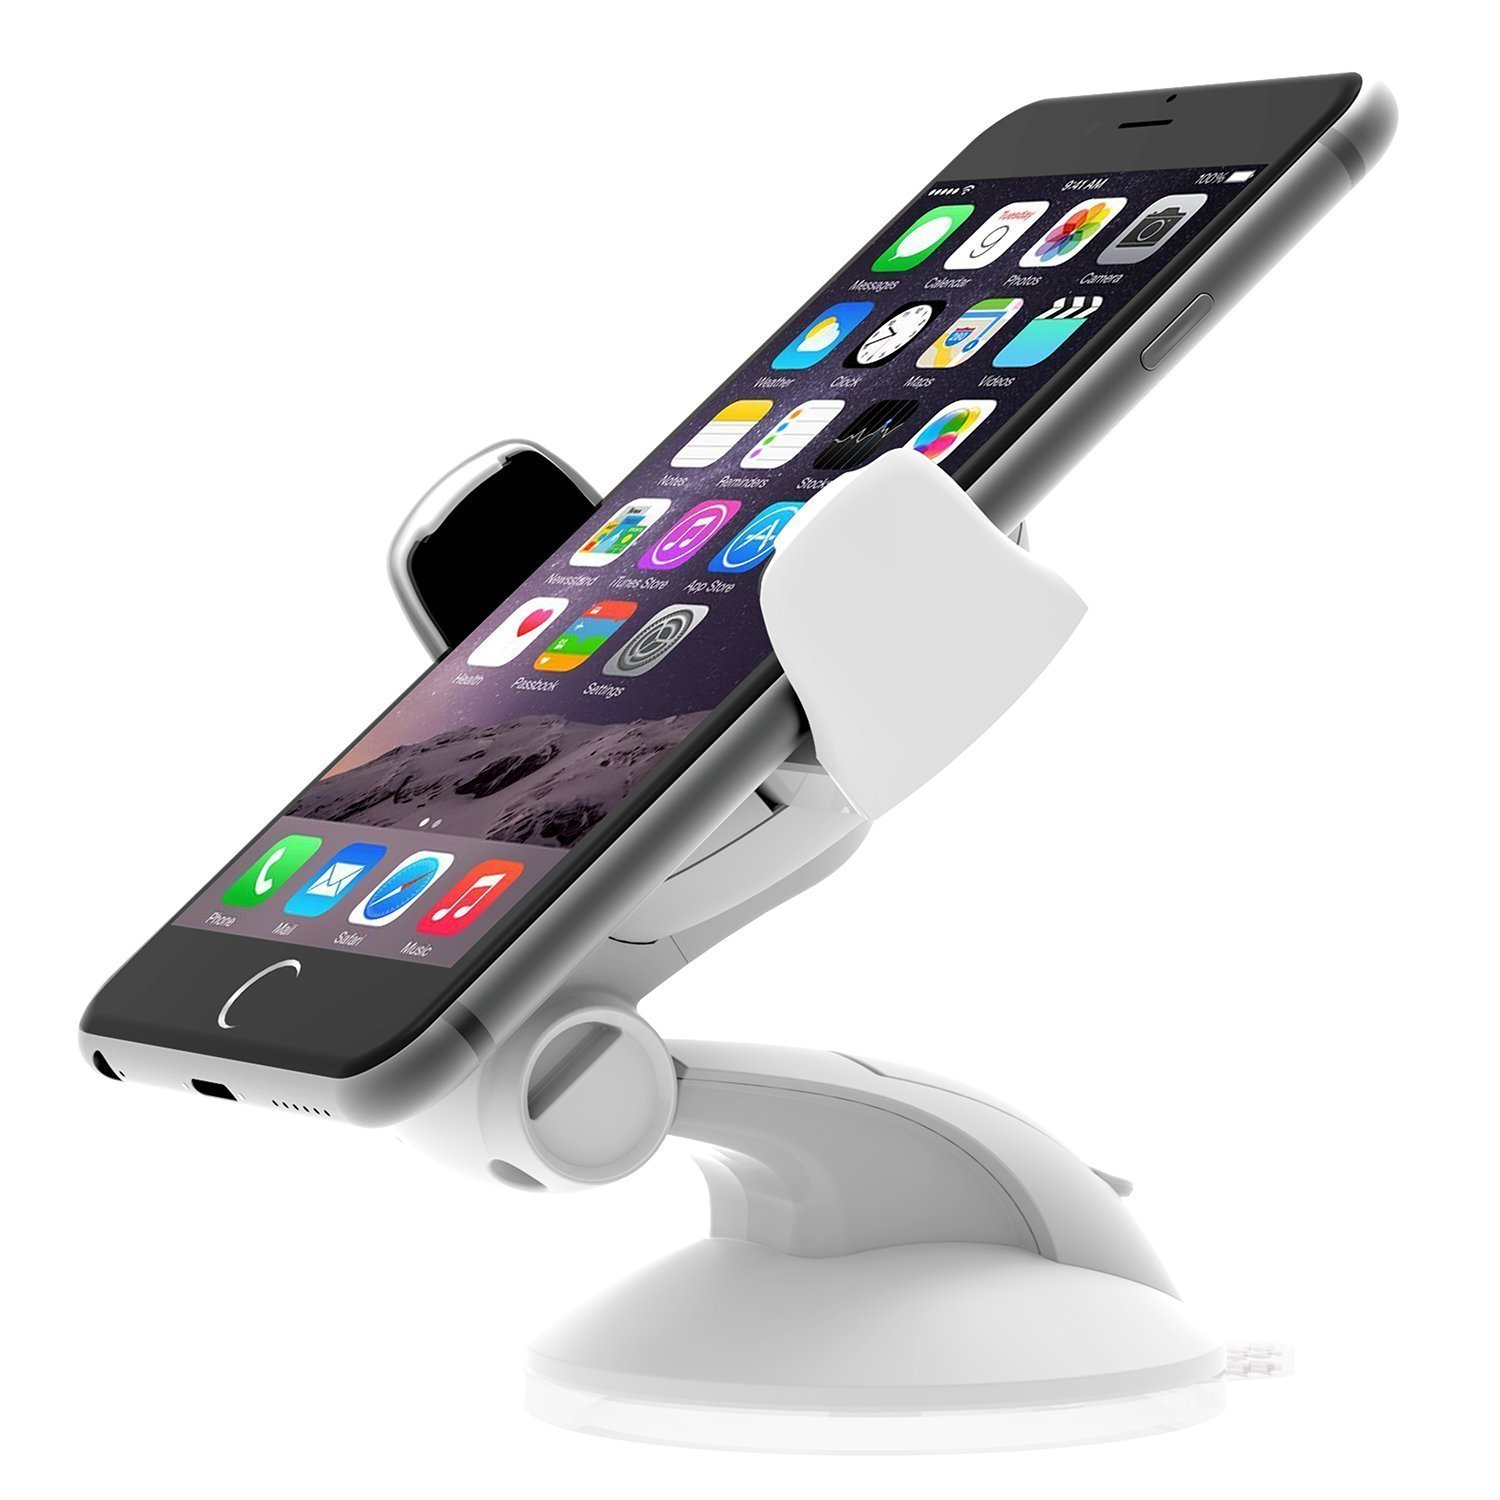 iOttie Easy Flex 3 Car Mount Holder for iPhone 7/6s/6, Galaxy S7/S7 Edge, S6/S6 Edge - Retail Packaging – Black BE Headwear HLCRIO108